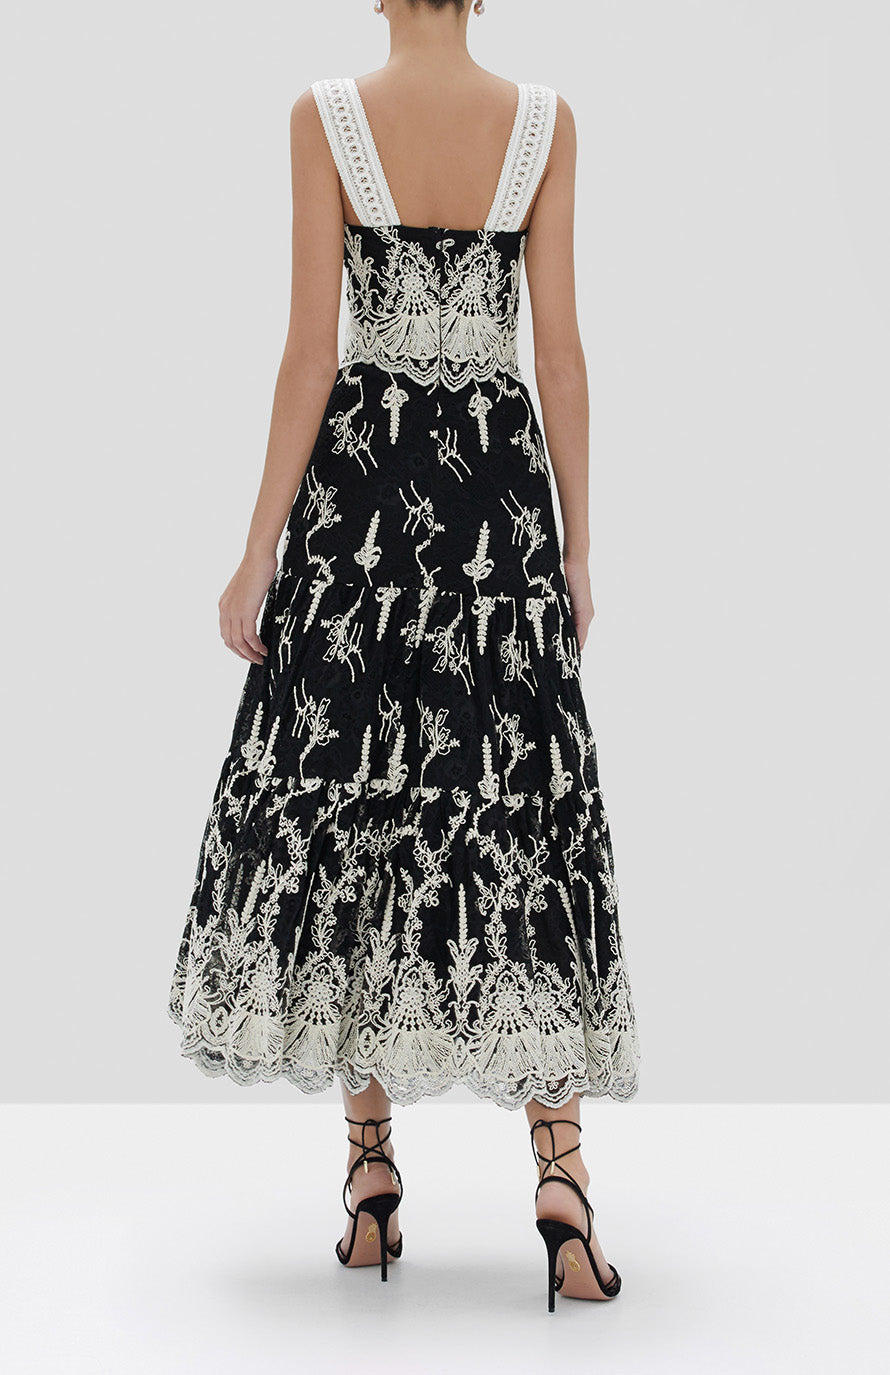 Alexis Karolina Dress in Black Embroidered Lace from the Fall Winter 2019 Ready To Wear Collection - Rear View